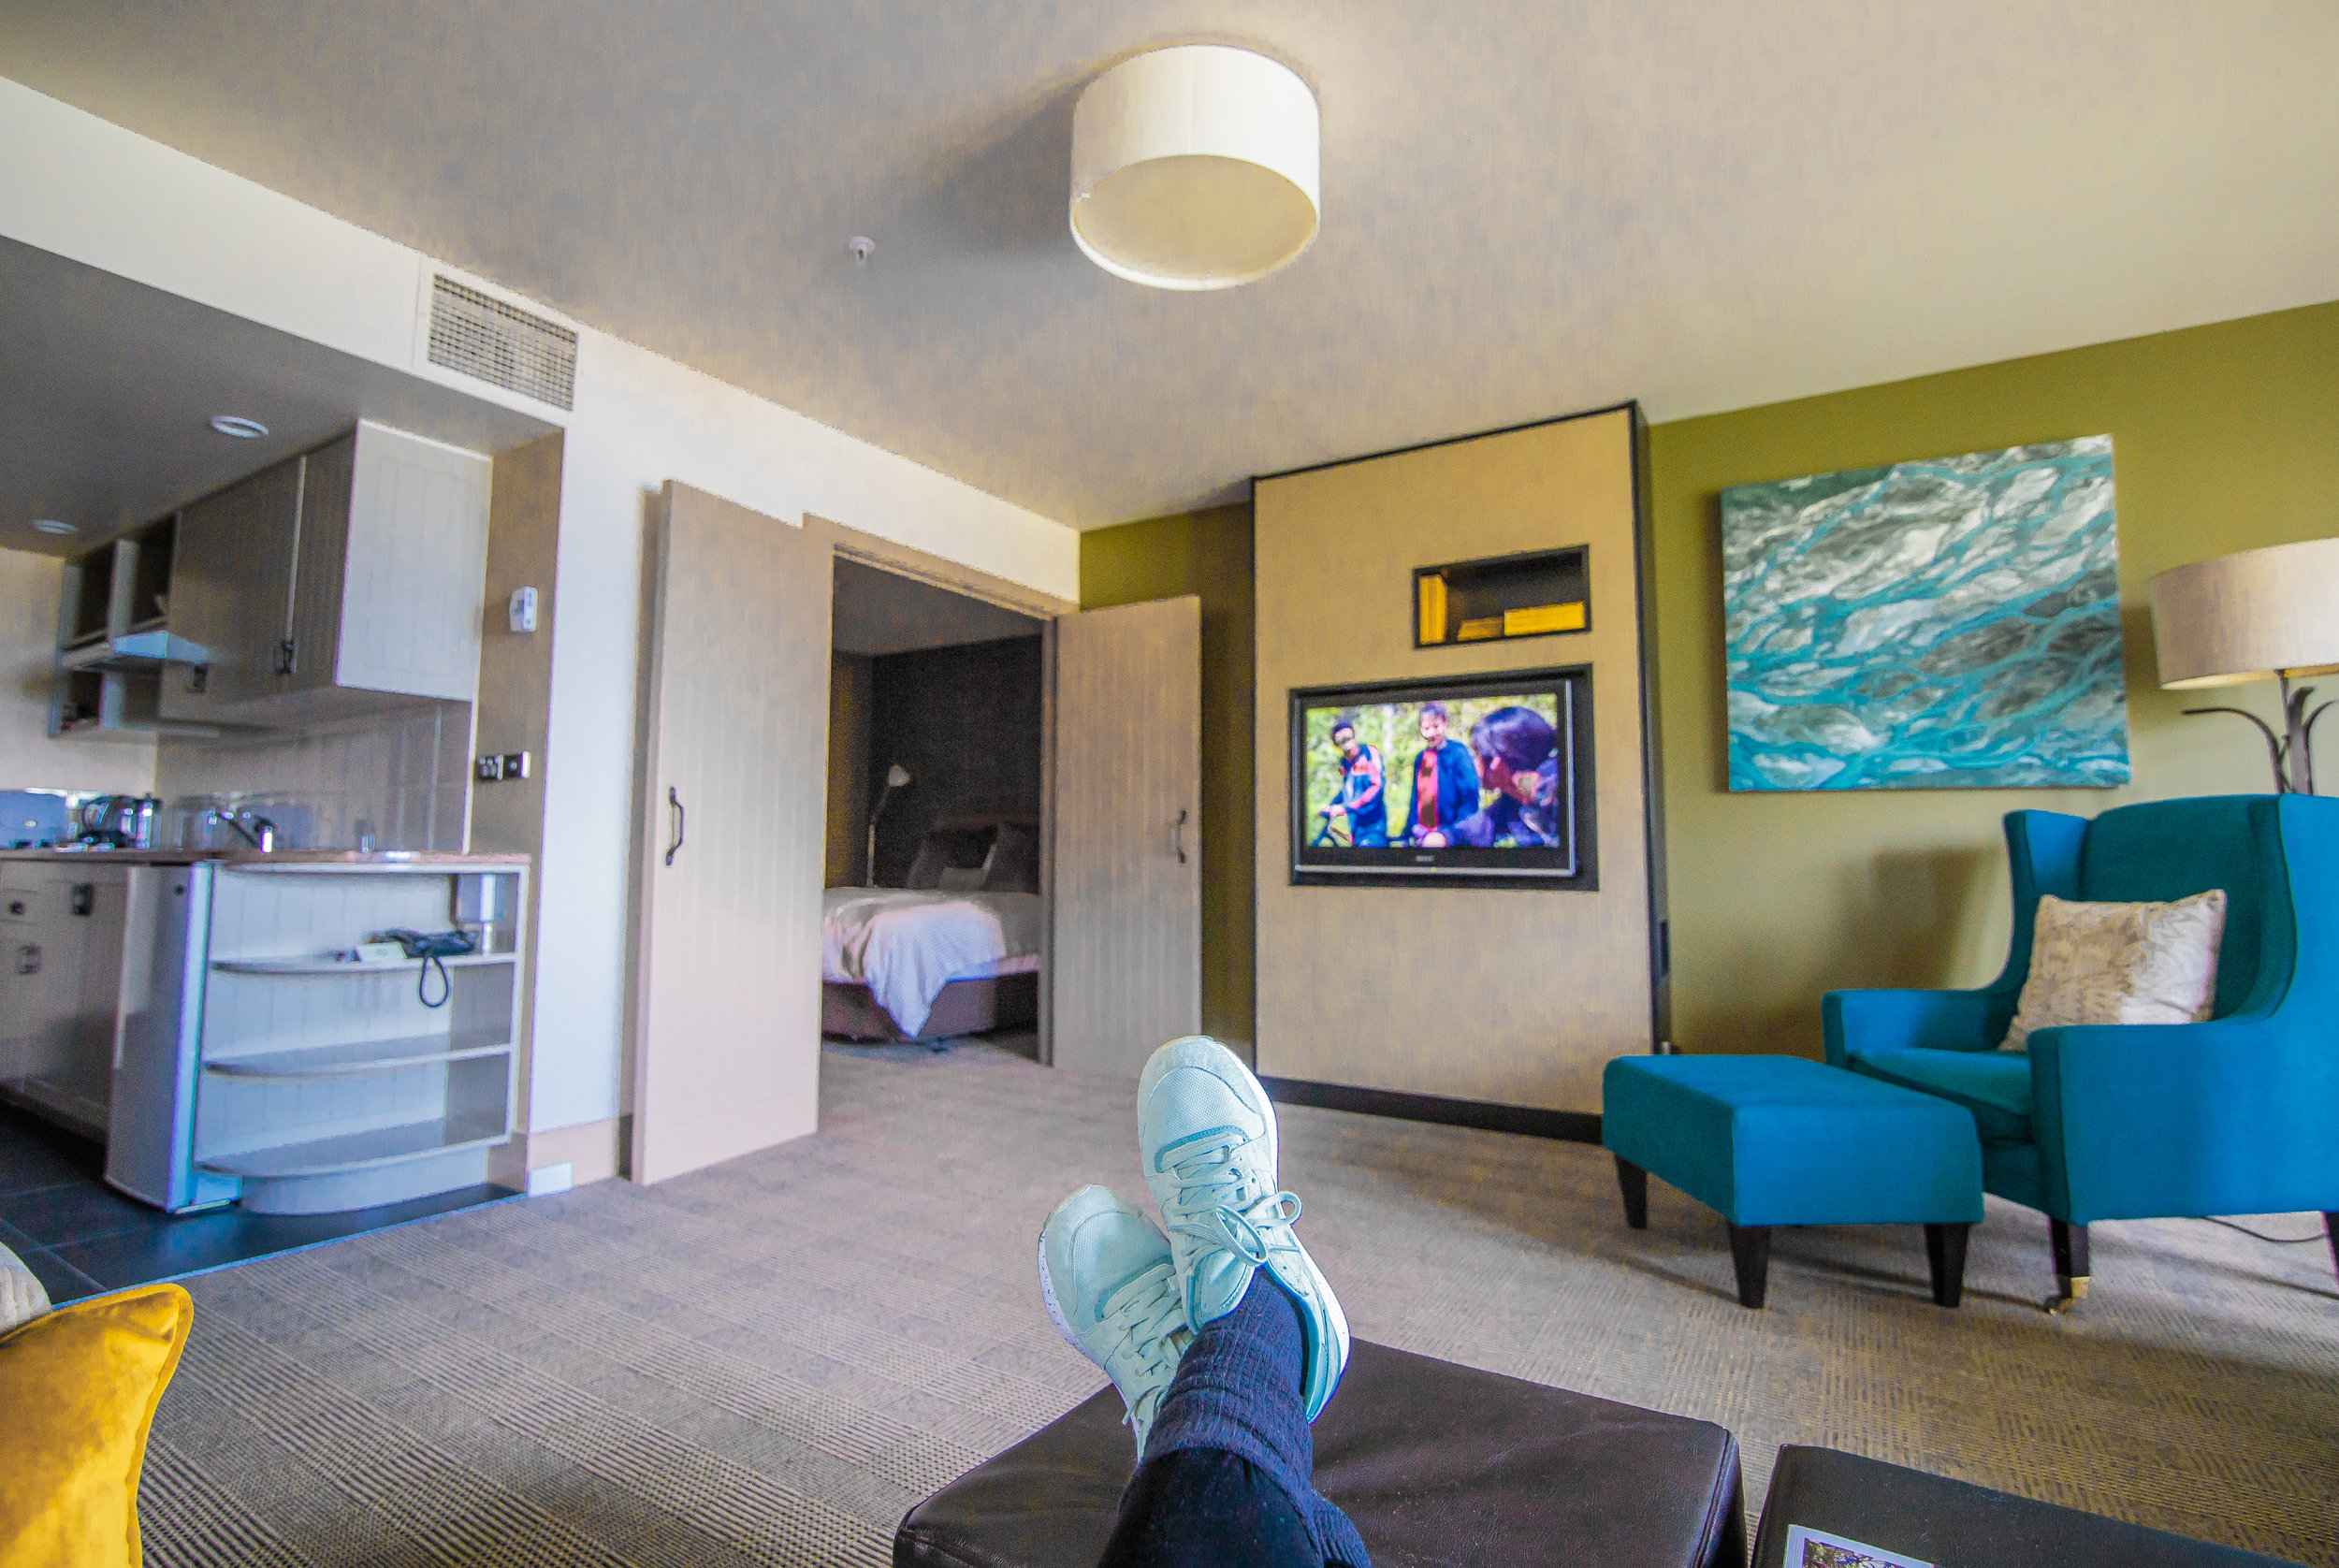 The lovely living room area of the suite